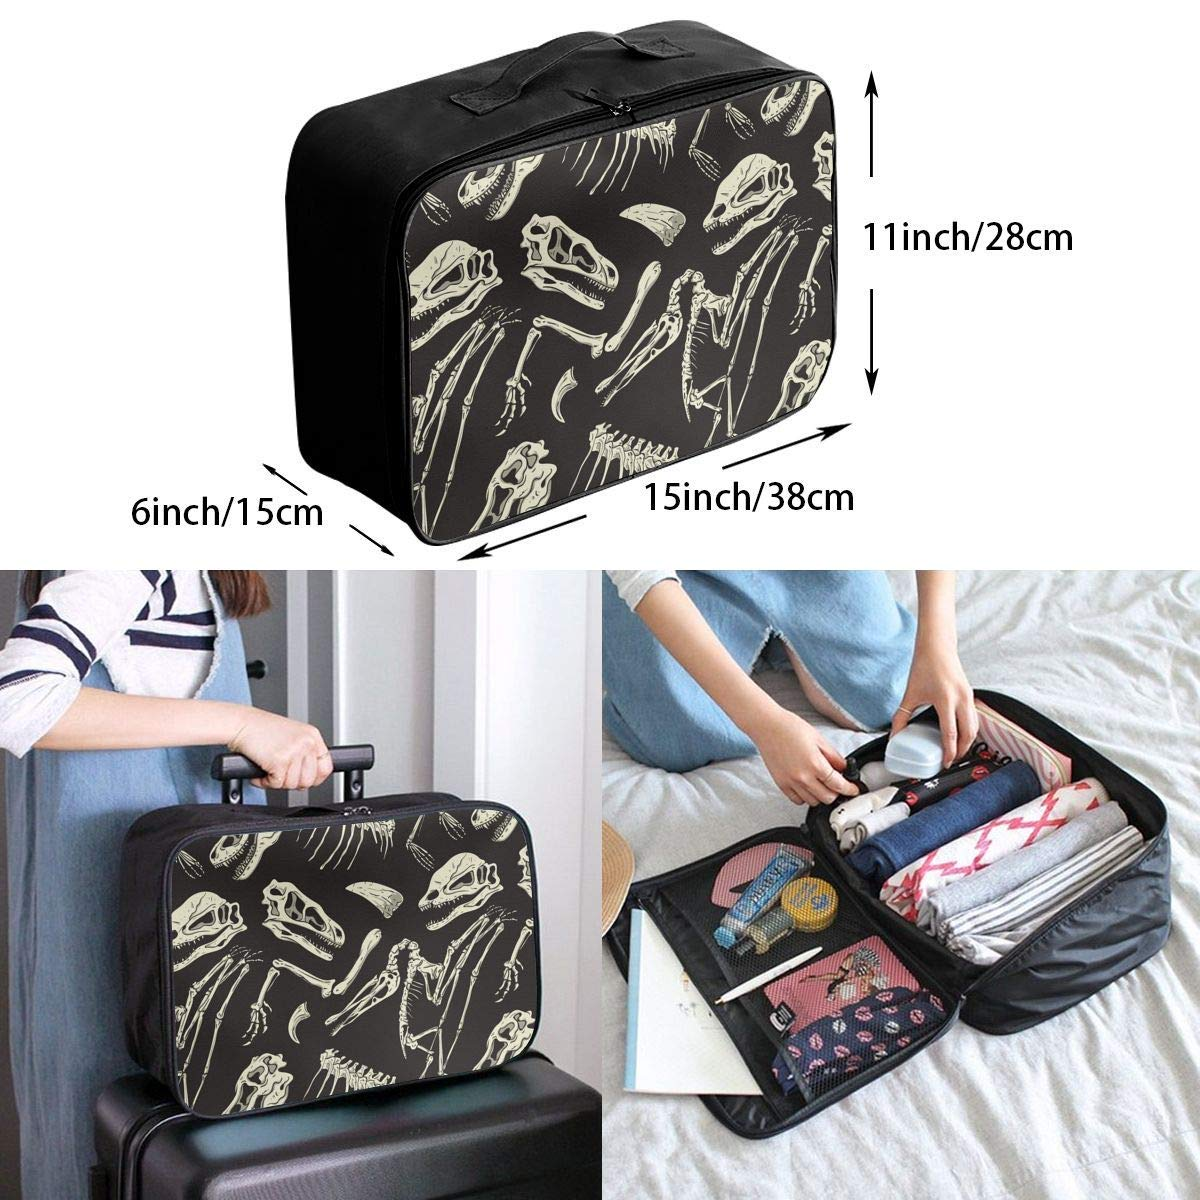 Dinosaurs Fossil Pattern Luggage Bag Capacity Portable Large Travel Duffel Bag Travel Organizer